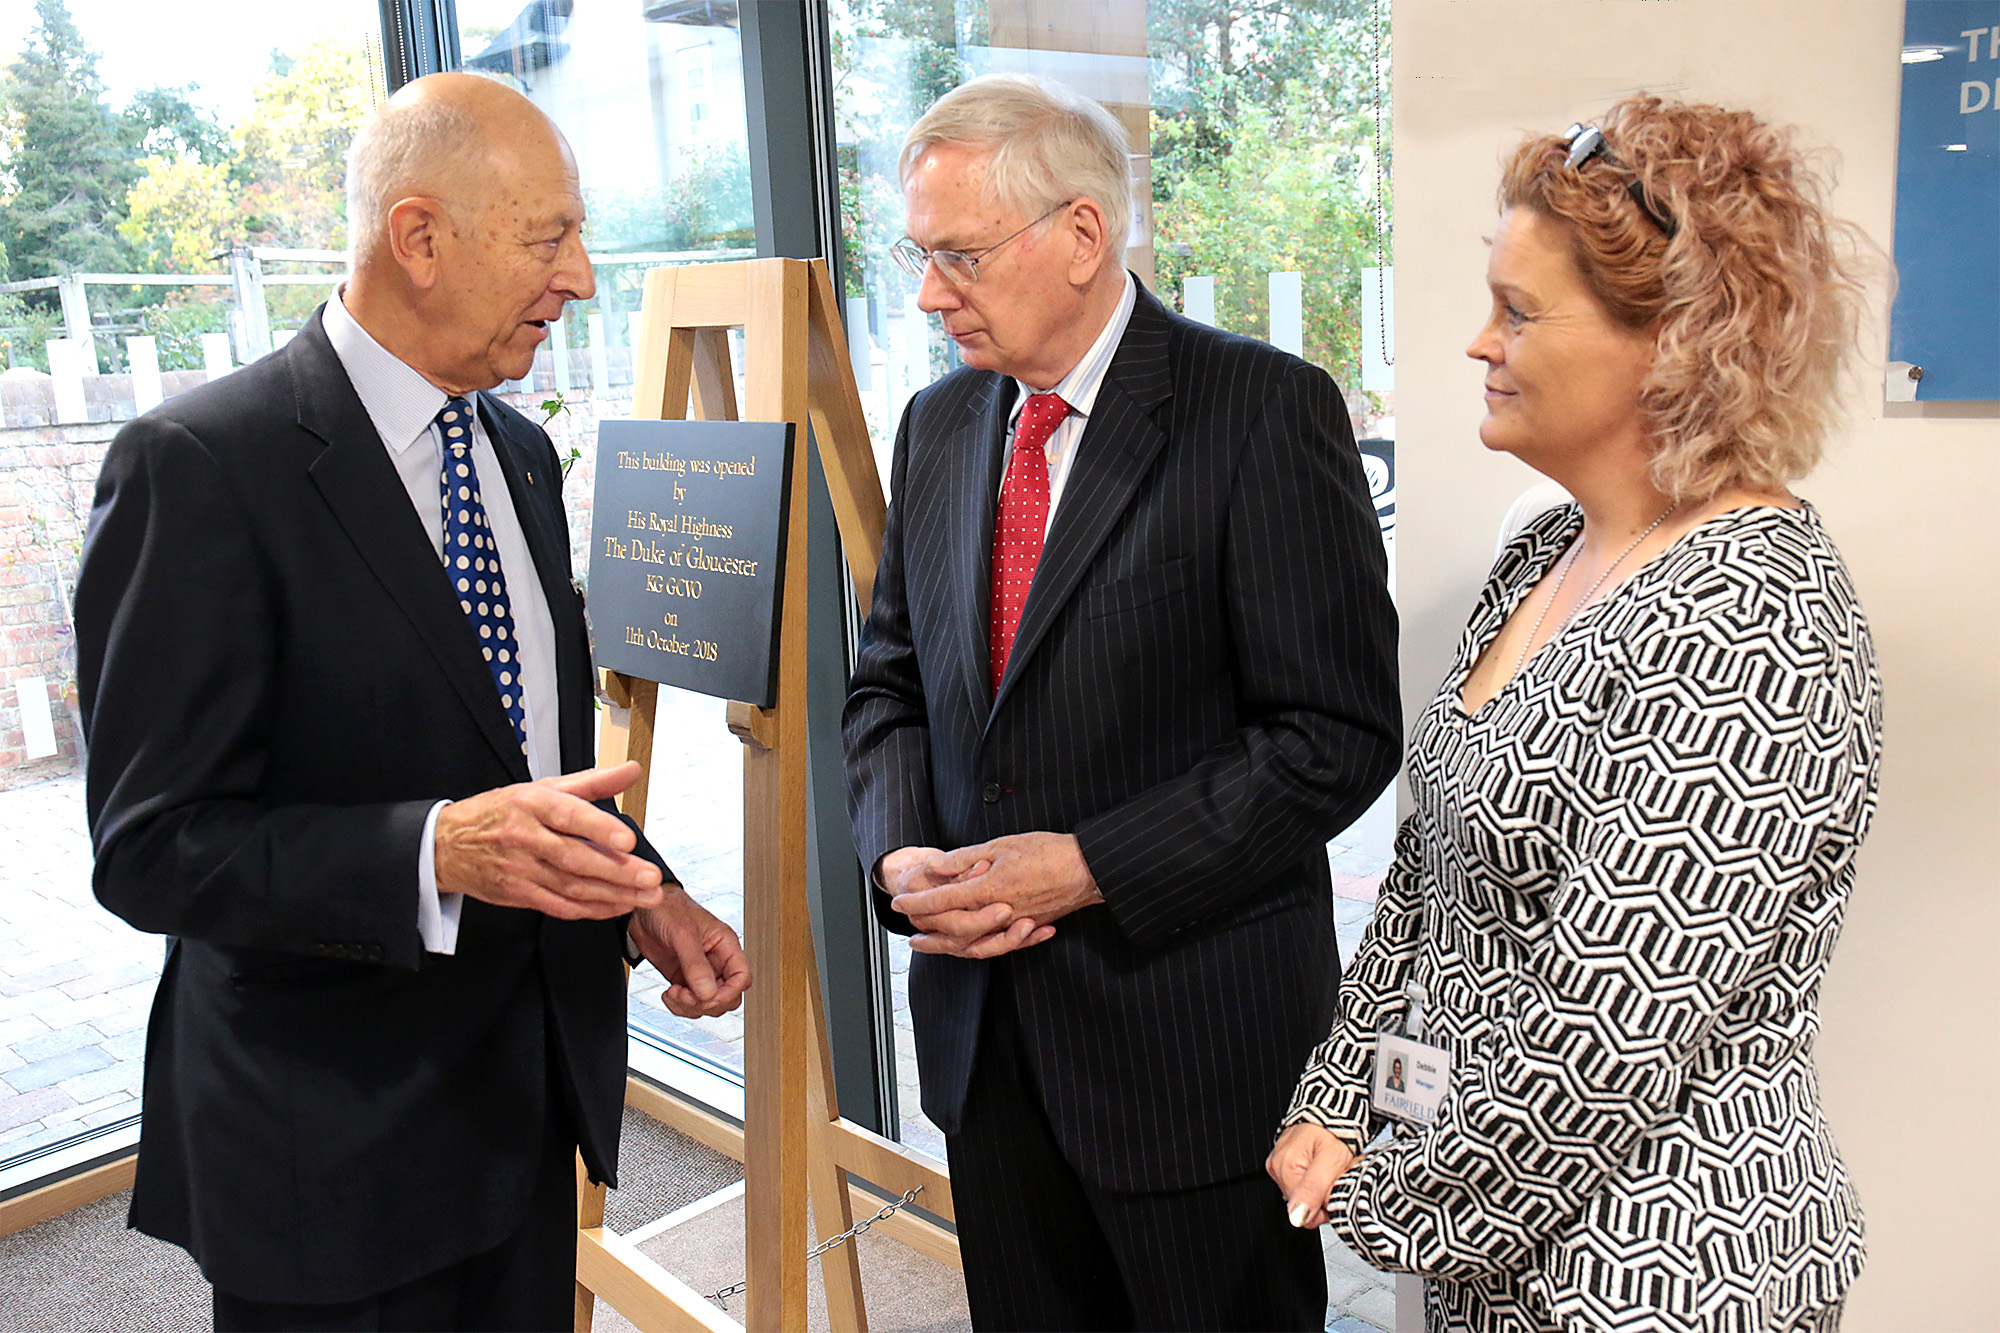 Chair of trustees John Cole and manager Debbie Hayes chat with HRH Duke of Gloucester. The Duke was in Oxford to open the new Fairfield Residential Home in Banbury Road, Oxford Picture: Ric Mellis 11/10/2018